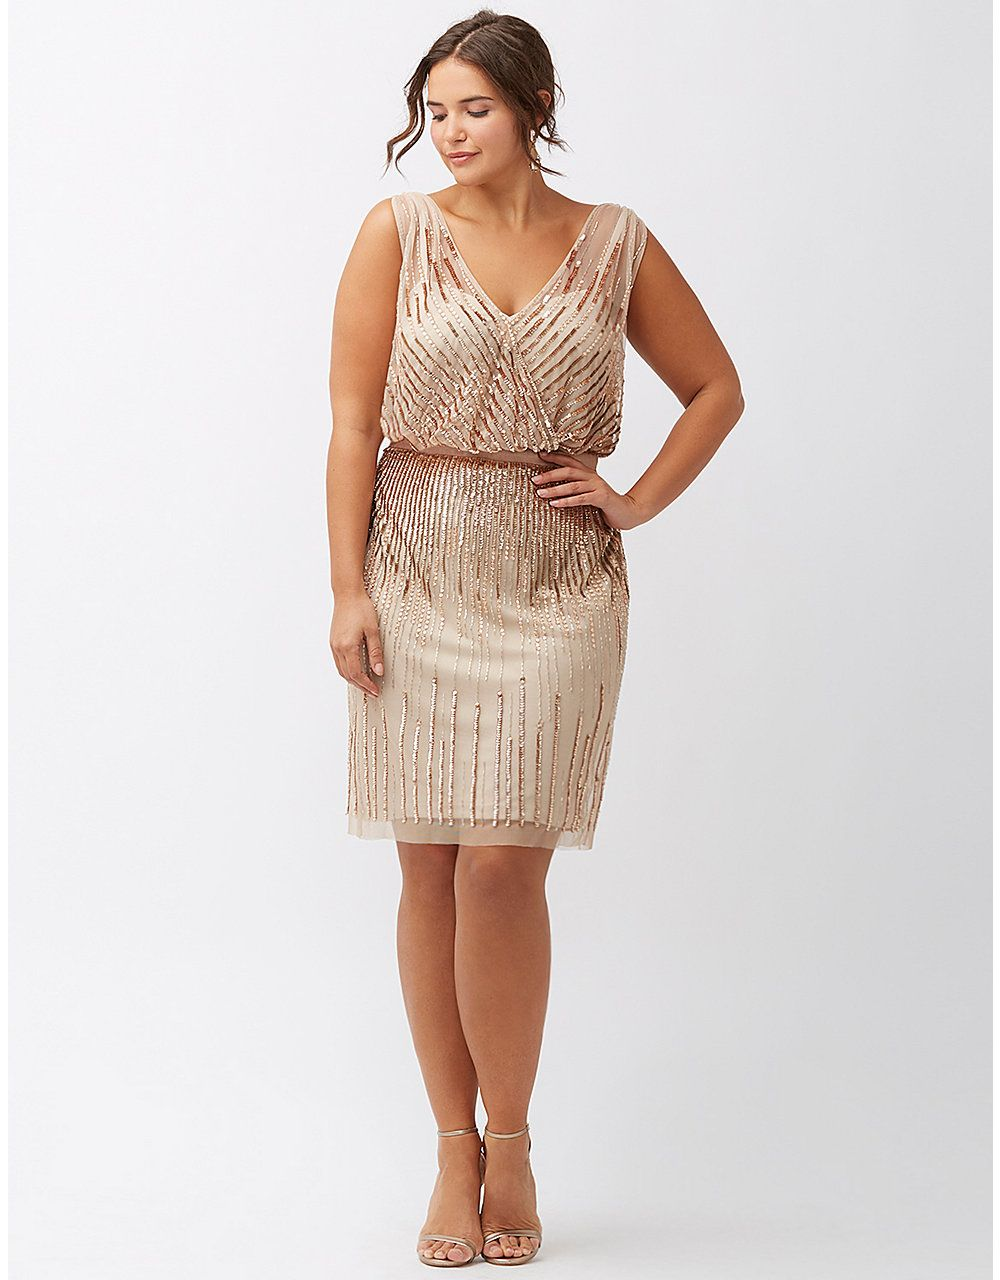 Sequined sleeveless dress by Adrianna Papell   Lane Bryant   PLUS ...